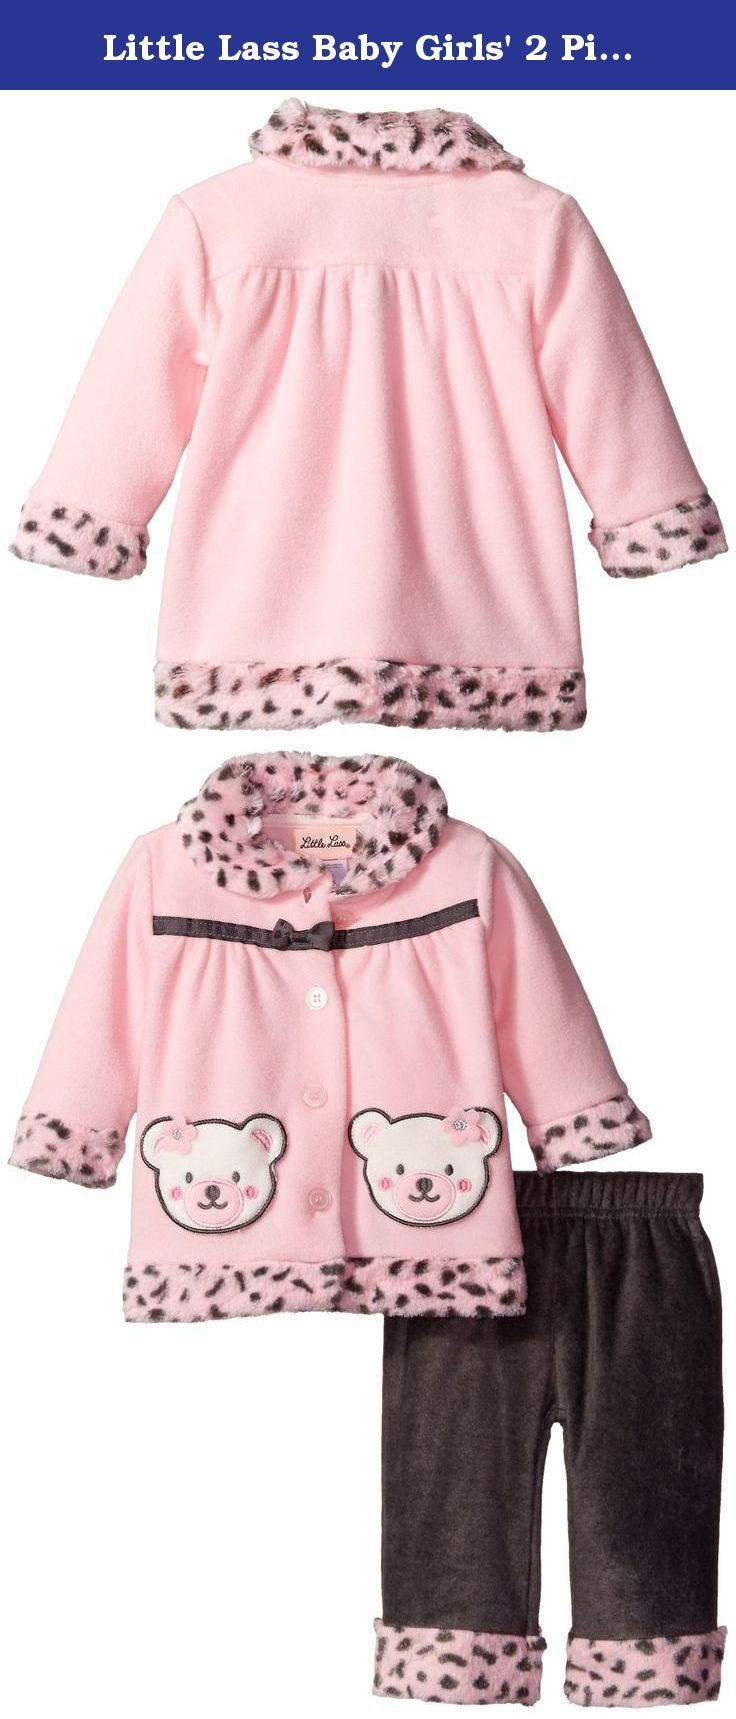 Little Lass Baby Girls' 2 Piece Polar Fleece Jacket and Pant Set Bear Bow, Light Pink, 6-9 Months. Little Lass offers cute and comfortable styles with quality construction. She is adorable in this 2 piece polar fleece set with a bear applique patch pocket jacket and fleece pants.